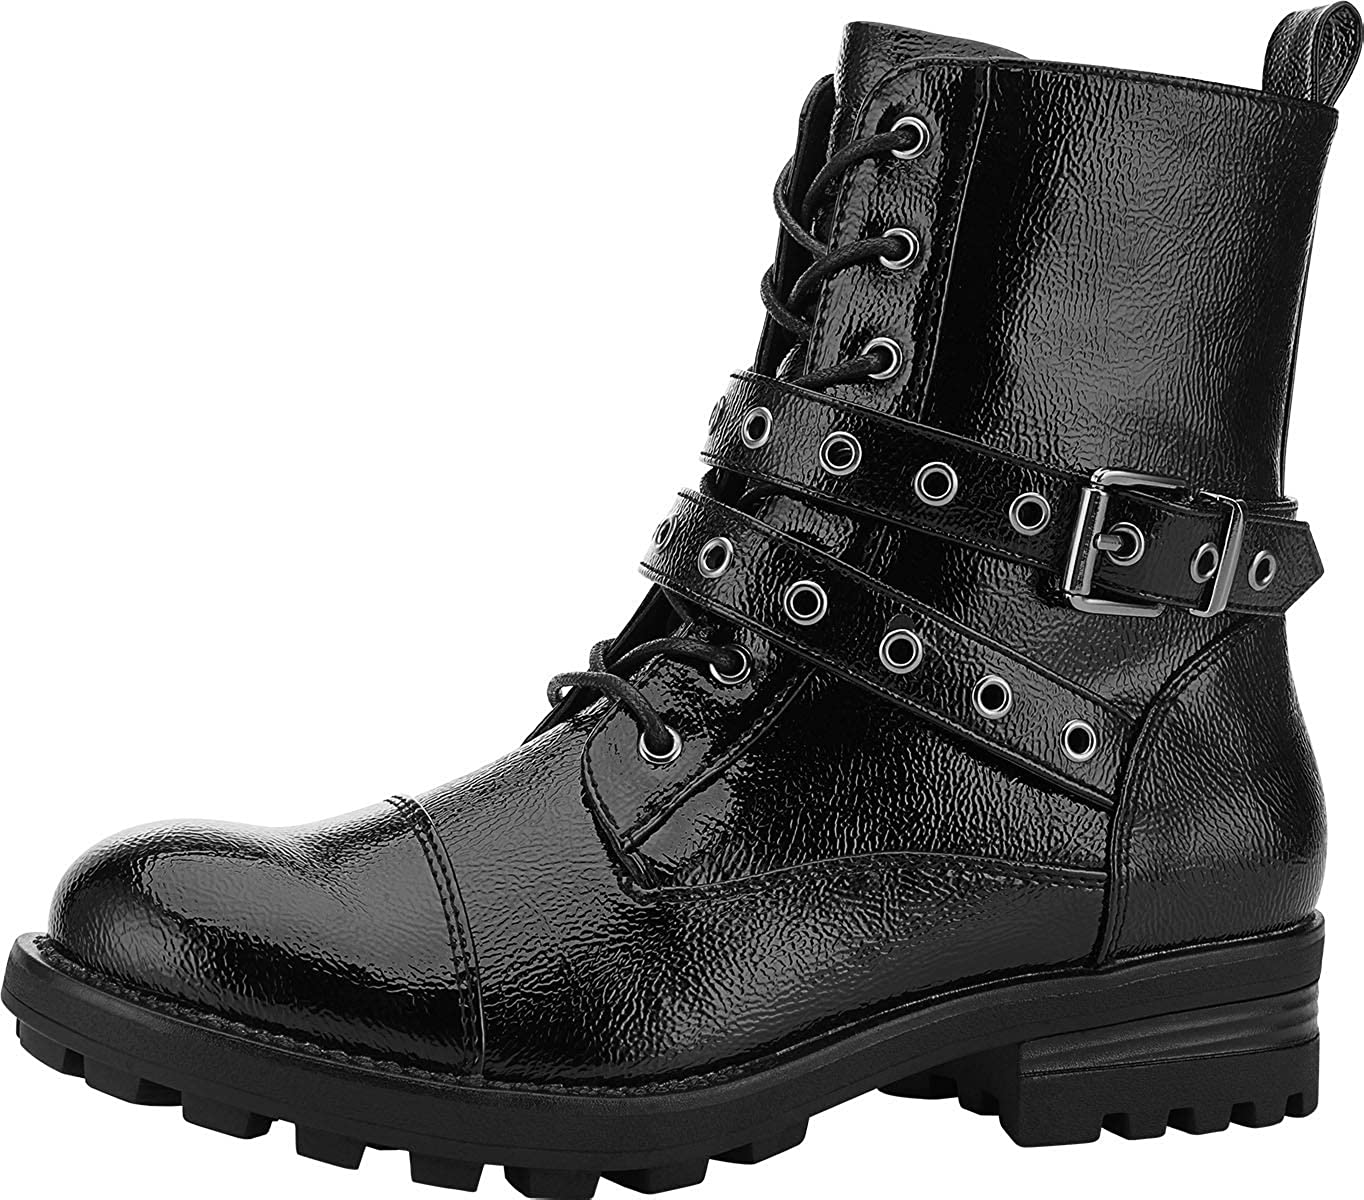 Yolanda Zula Women's Black Combat Boots Fashion Martin Booties Lace Up